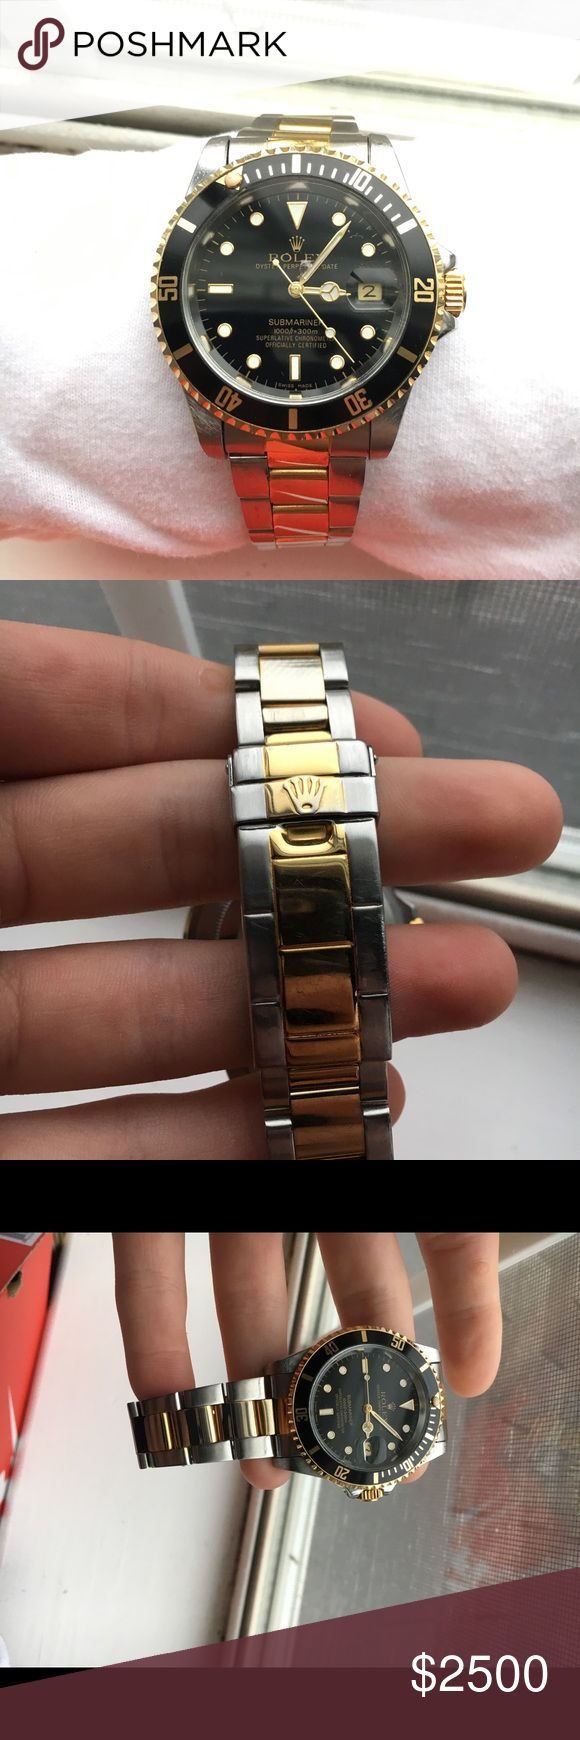 Rolex Oyster Perpetual Used Rolex given to me through my grandfathers will. 100% authentic as seen in the pictures, also with the serial number.  No major flaws, only vaguely noticeable wear from usage over time. PRICE IS NEGOTIABLE! Rolex Accessories Watches